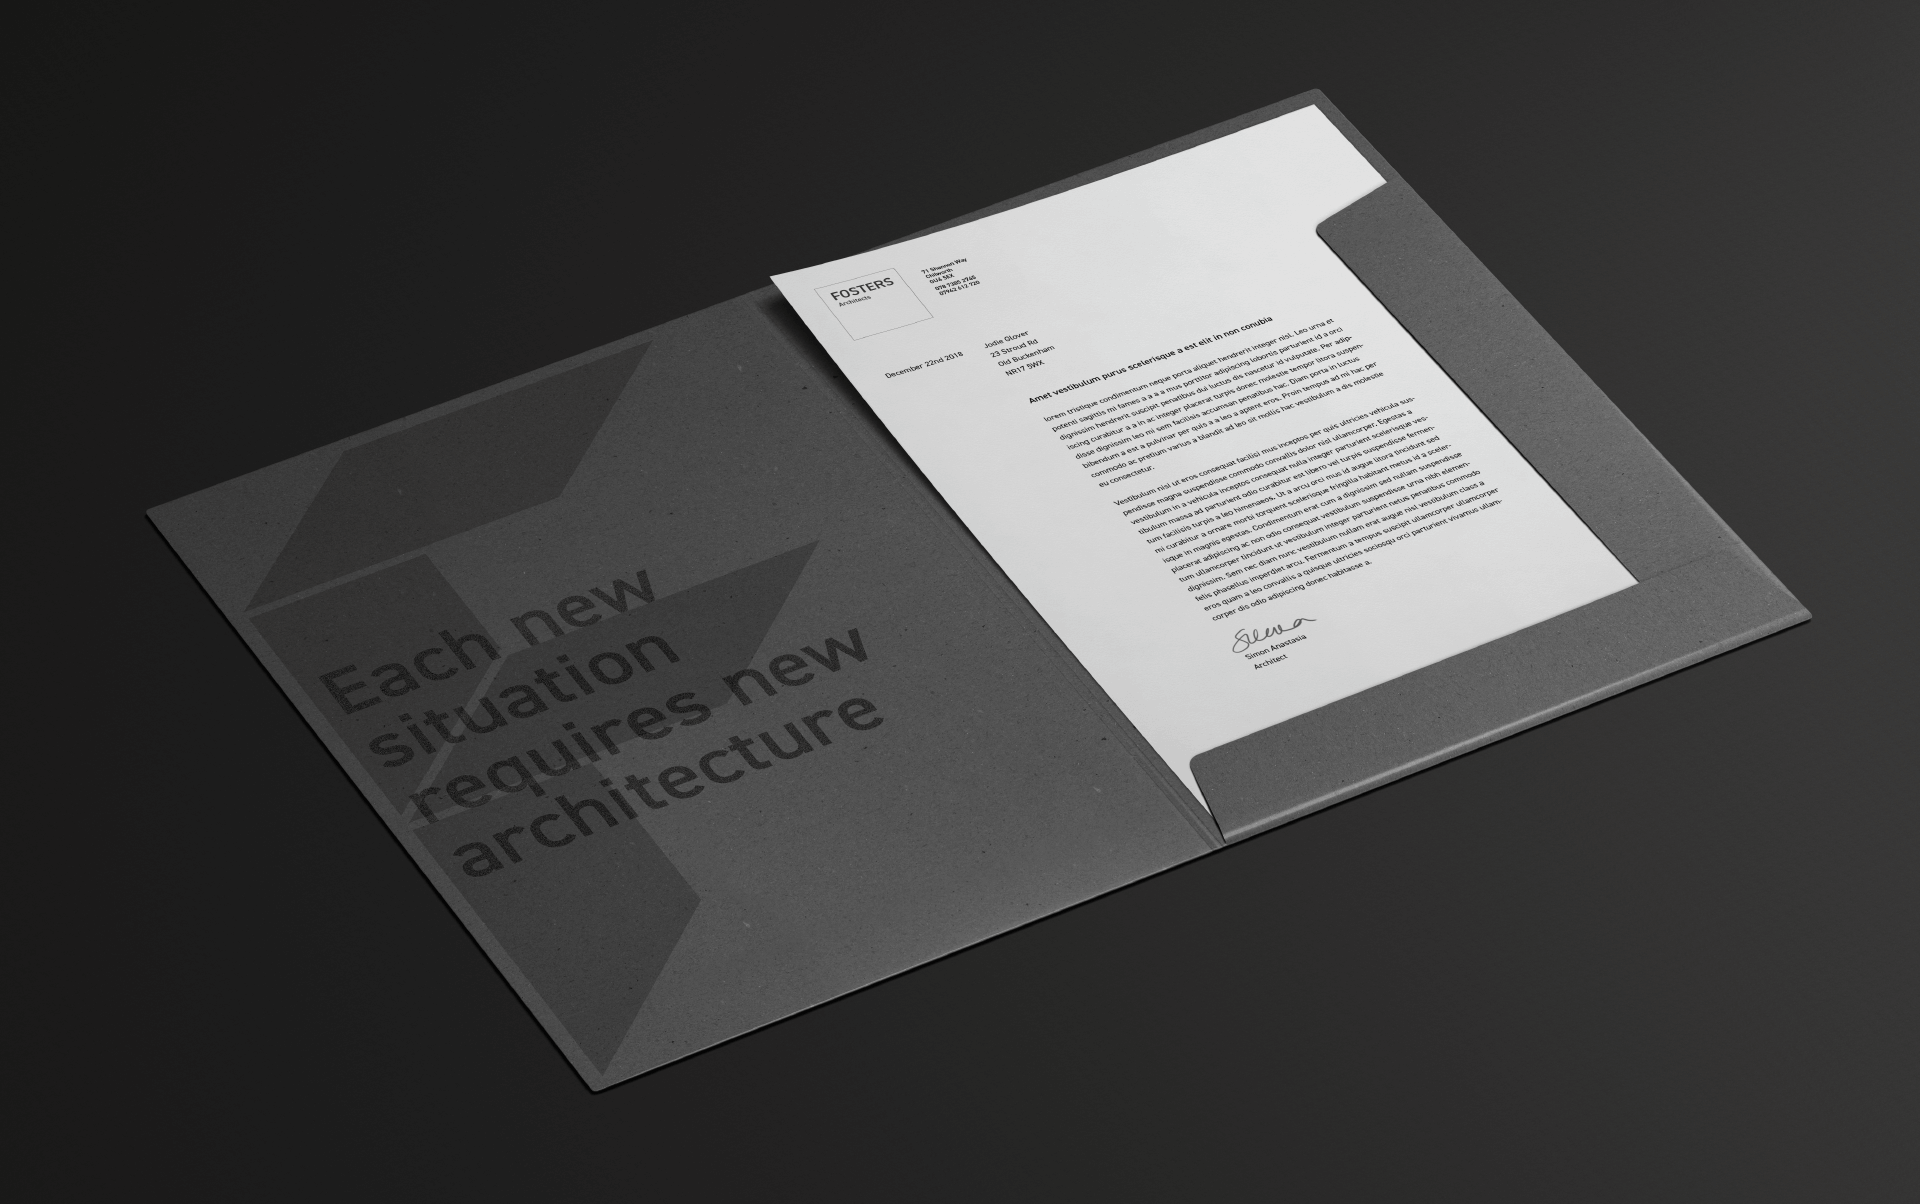 fosters architects presentation-06.png